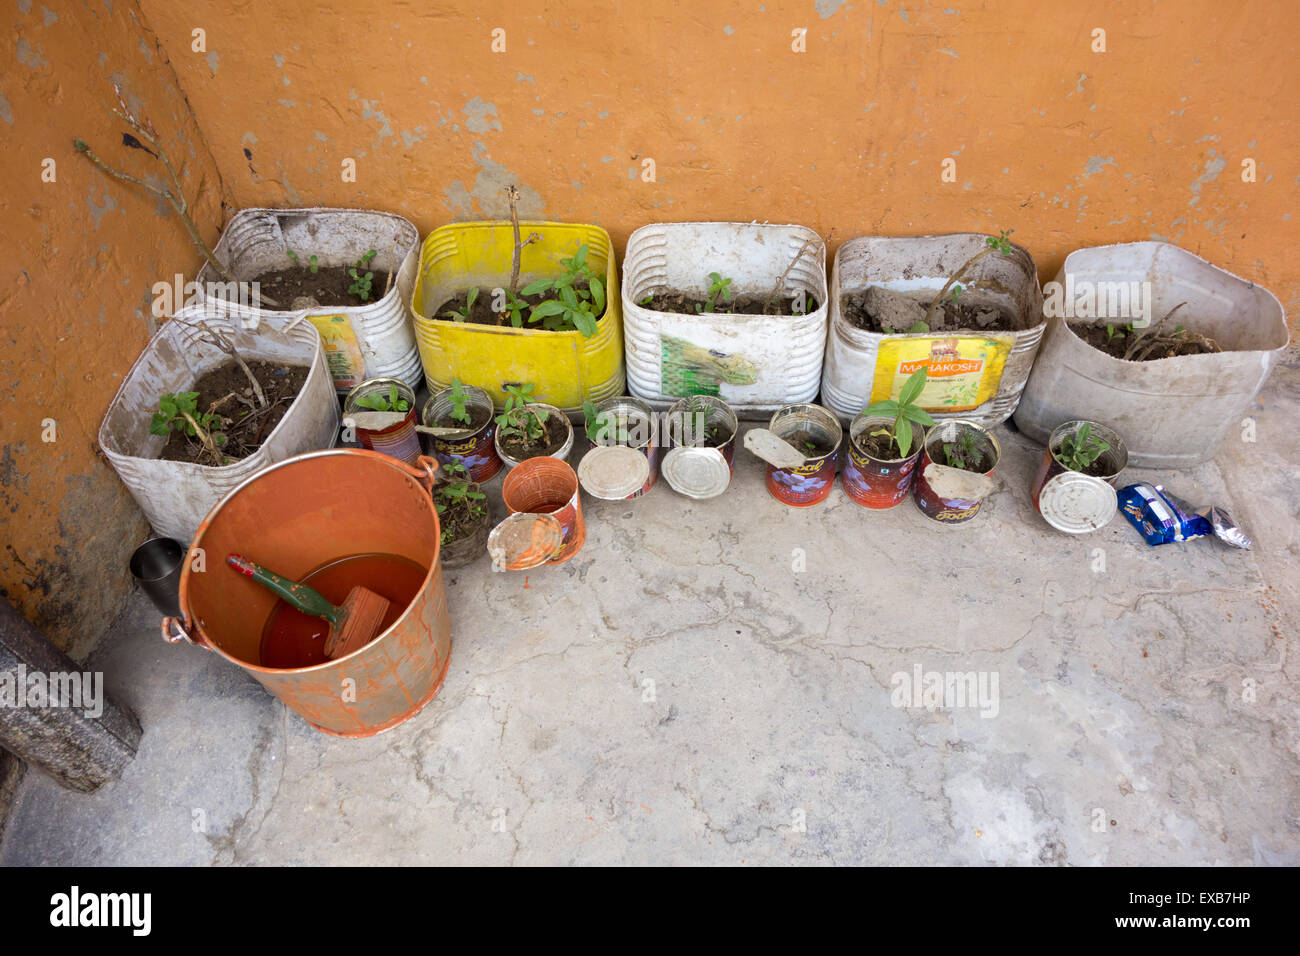 Key Monastery (or Kee, Ki, Kye), Spiti Valley, India - growing plants in containers and orange paint inside the - Stock Image